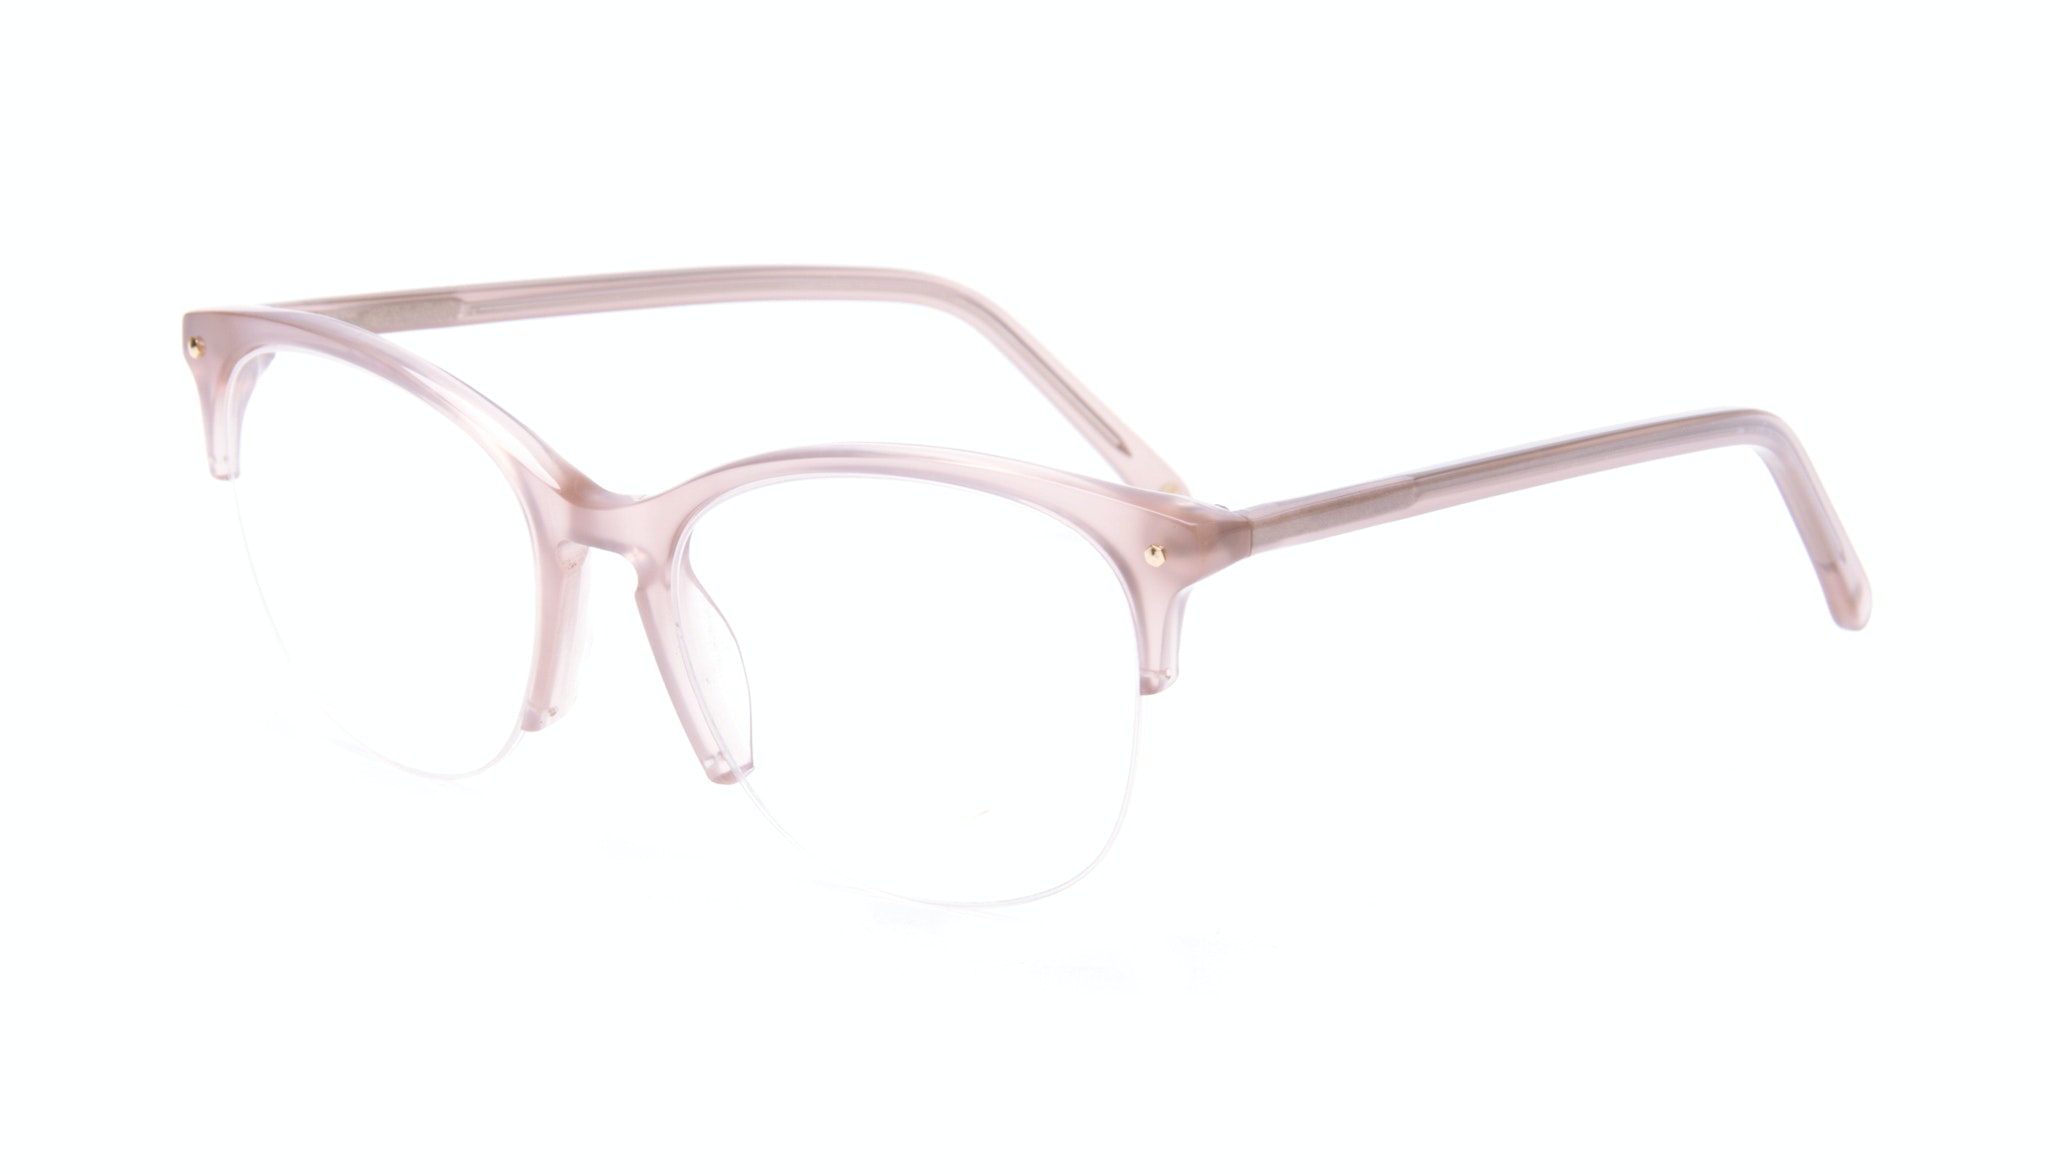 Affordable Fashion Glasses Rectangle Square Round Semi-Rimless Eyeglasses Women Nadine Light Pink Mouse Tilt